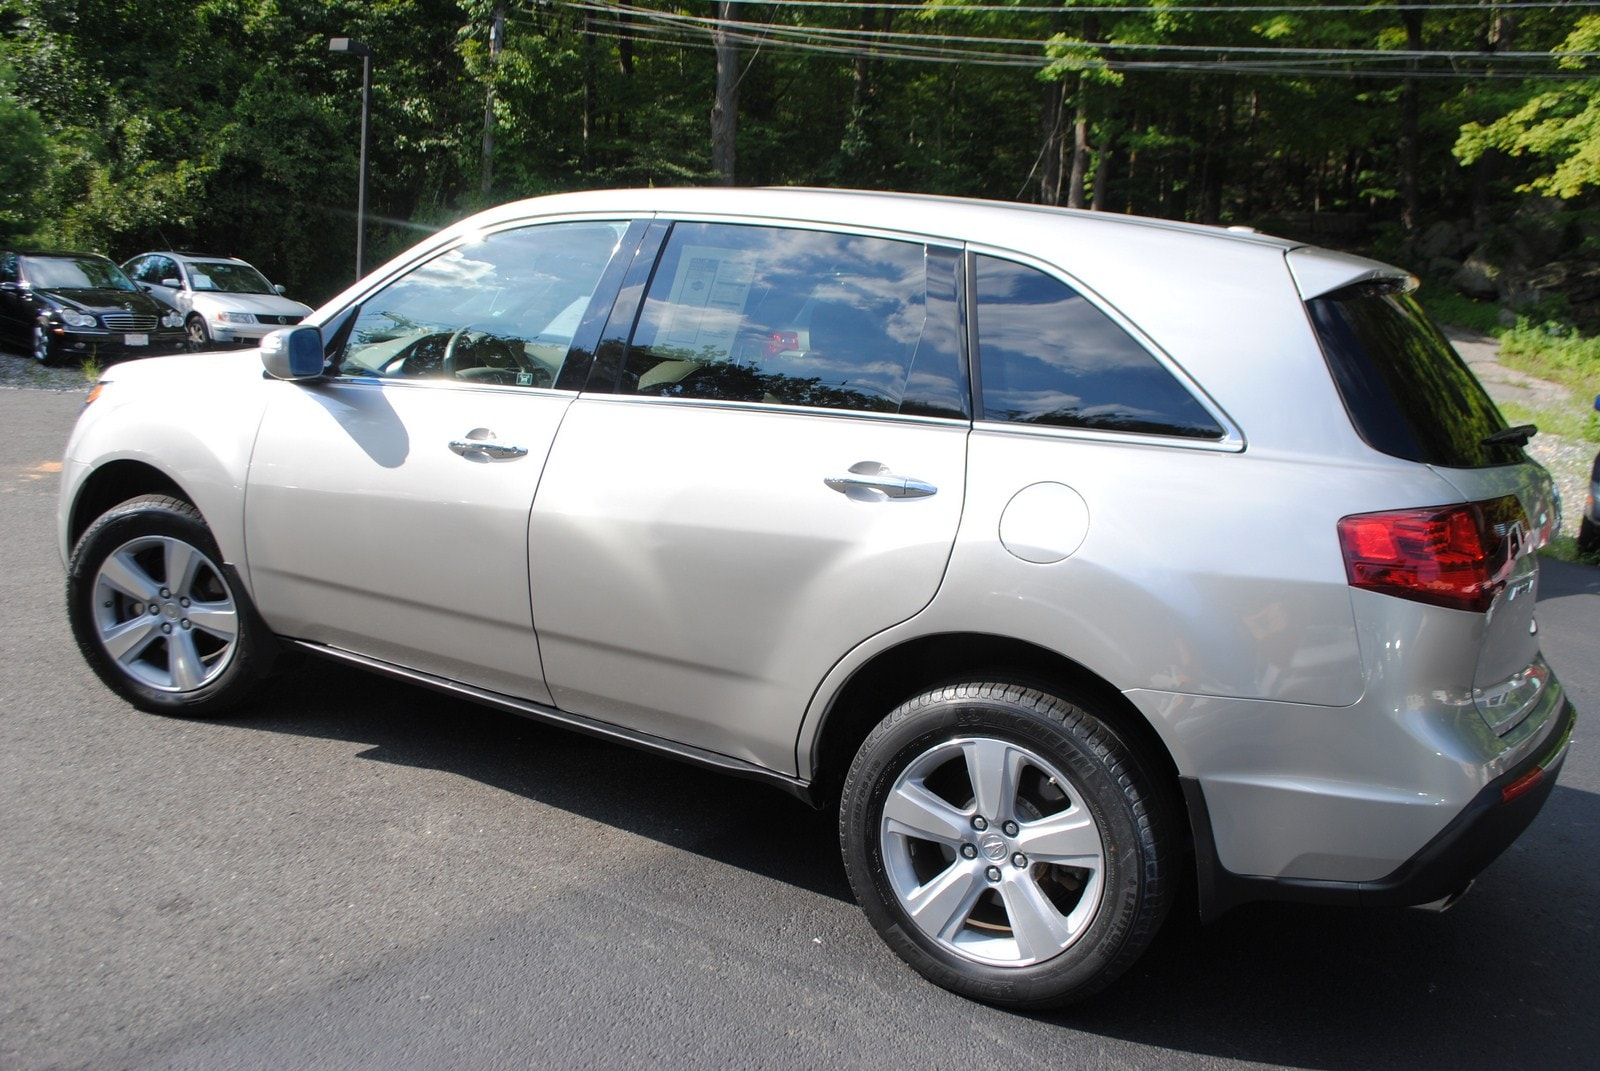 used 2011 acura mdx for sale west milford nj. Black Bedroom Furniture Sets. Home Design Ideas